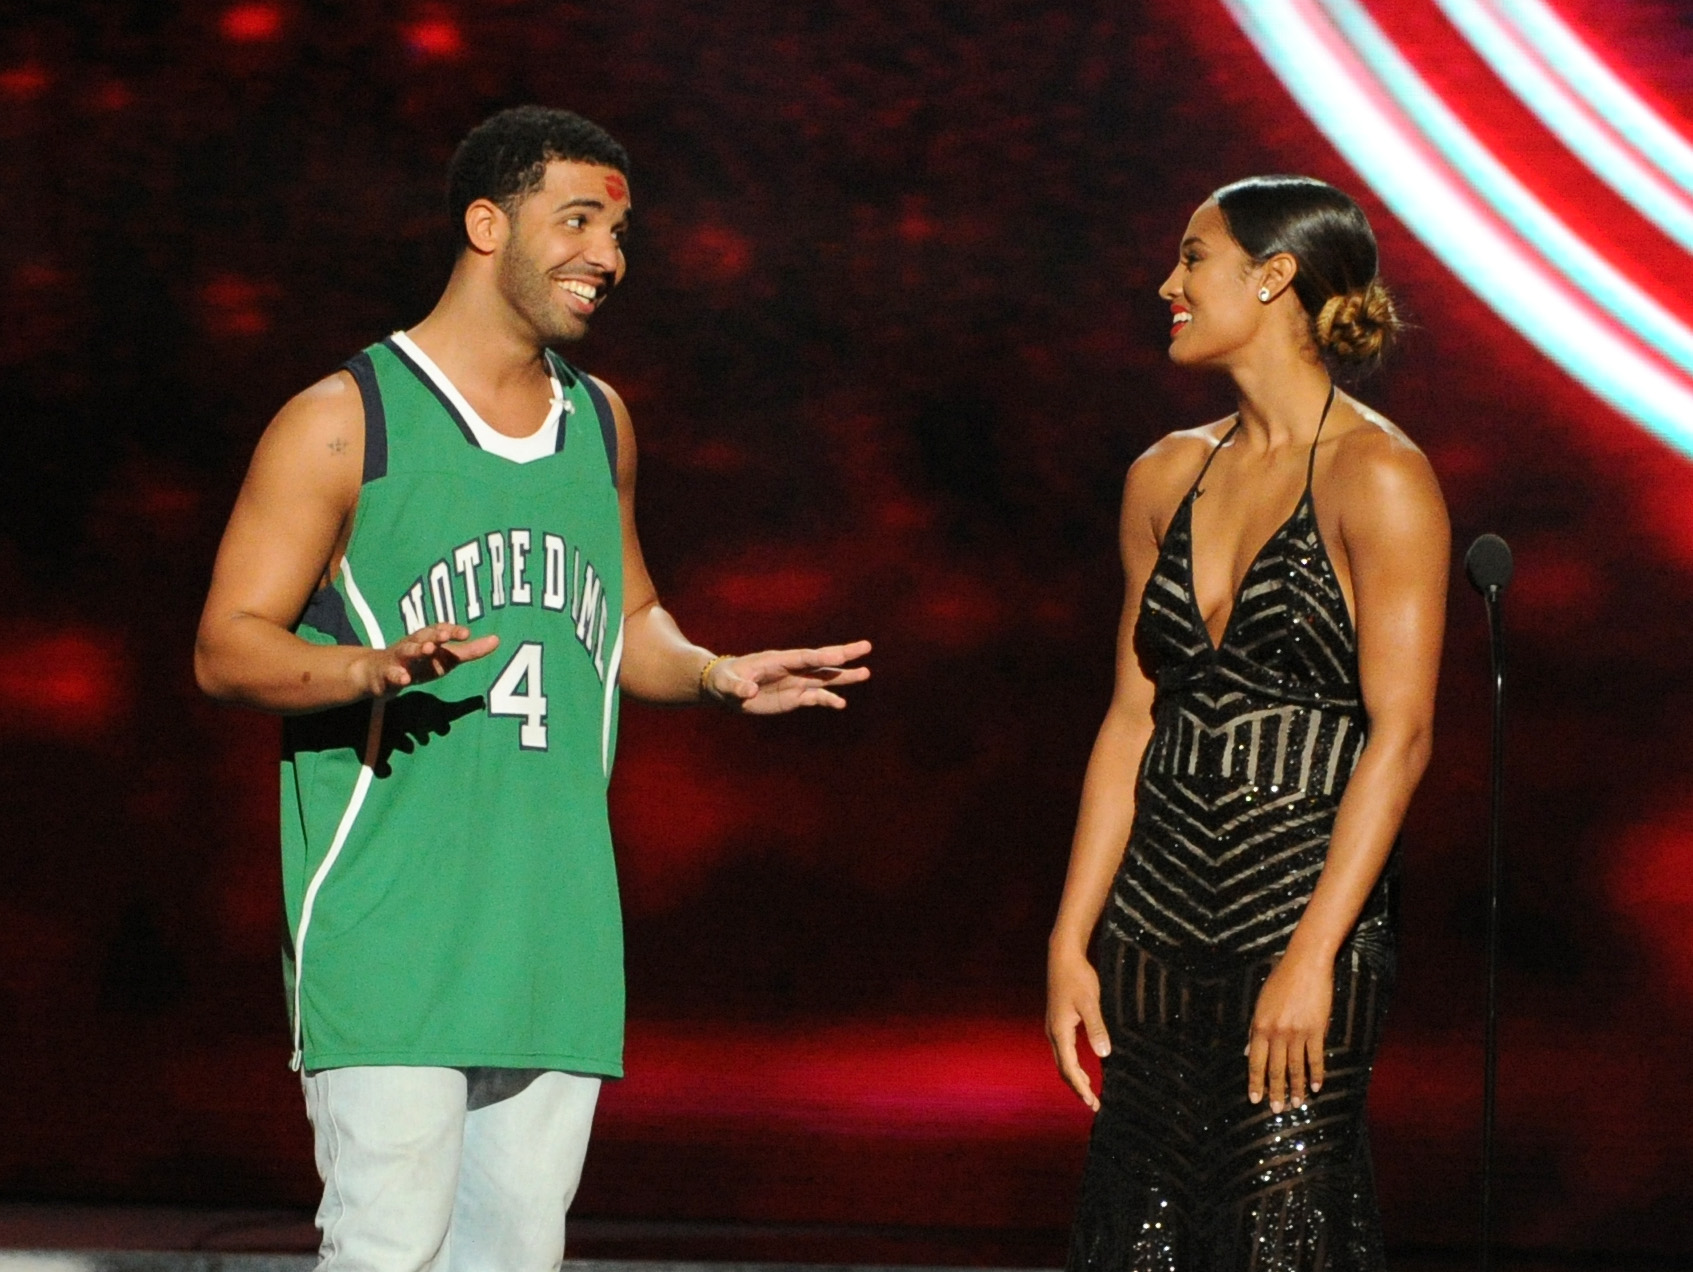 394c661931ea Host Drake (left) and Skylar Diggins speak onstage at the 2014 ESPYS at  Nokia Theatre L.A. Live on July 16